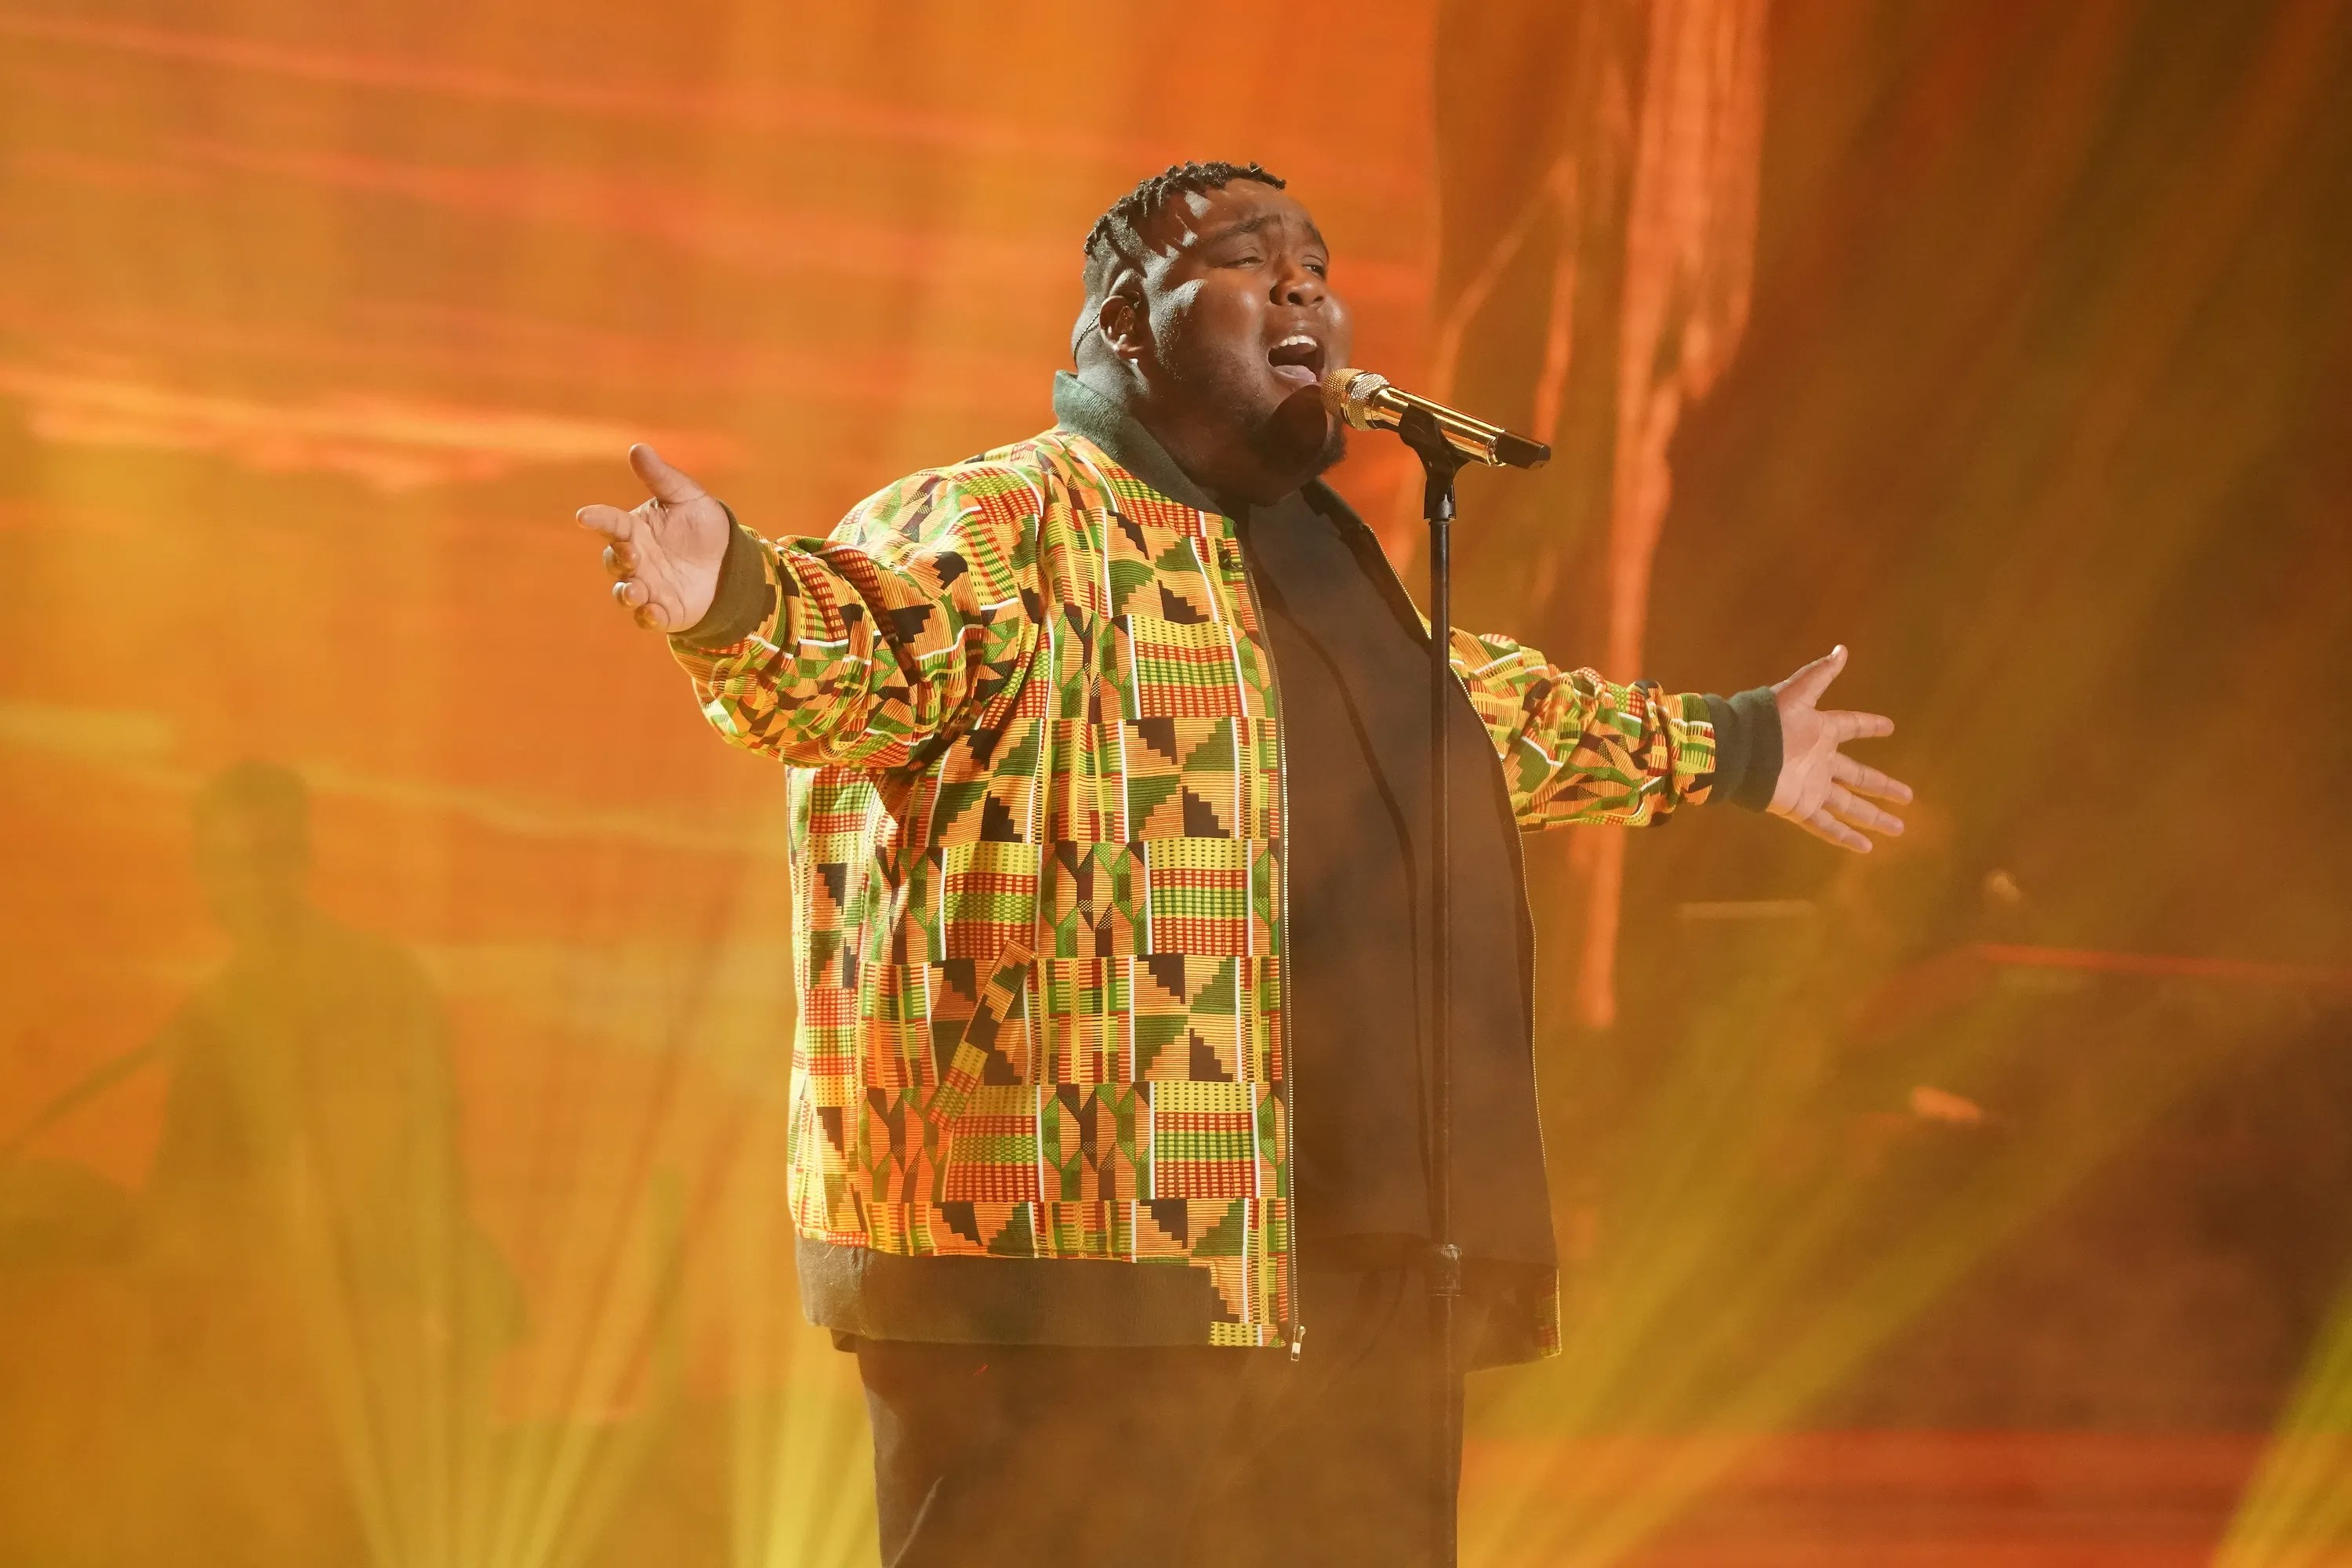 """Willie Spence, 21, put his powerful voice to use on a rousing performance of """"Circle of Life"""" from """"The Lion King."""""""